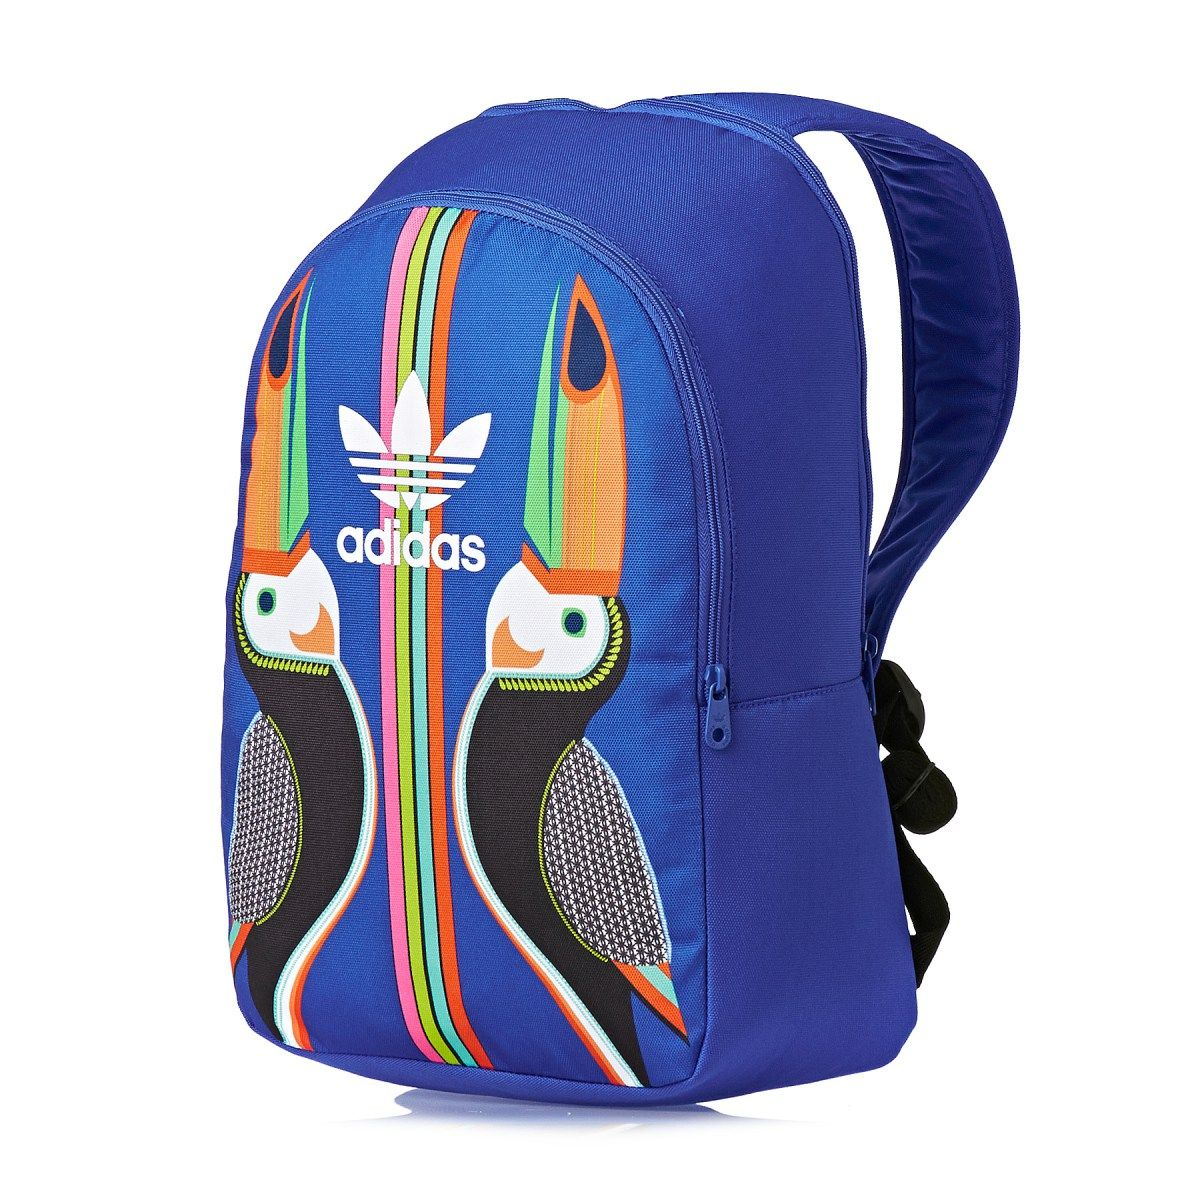 74169814cc26 Women s Adidas Originals Backpacks - Adidas Originals Tukana Backpack - Lab  Blue